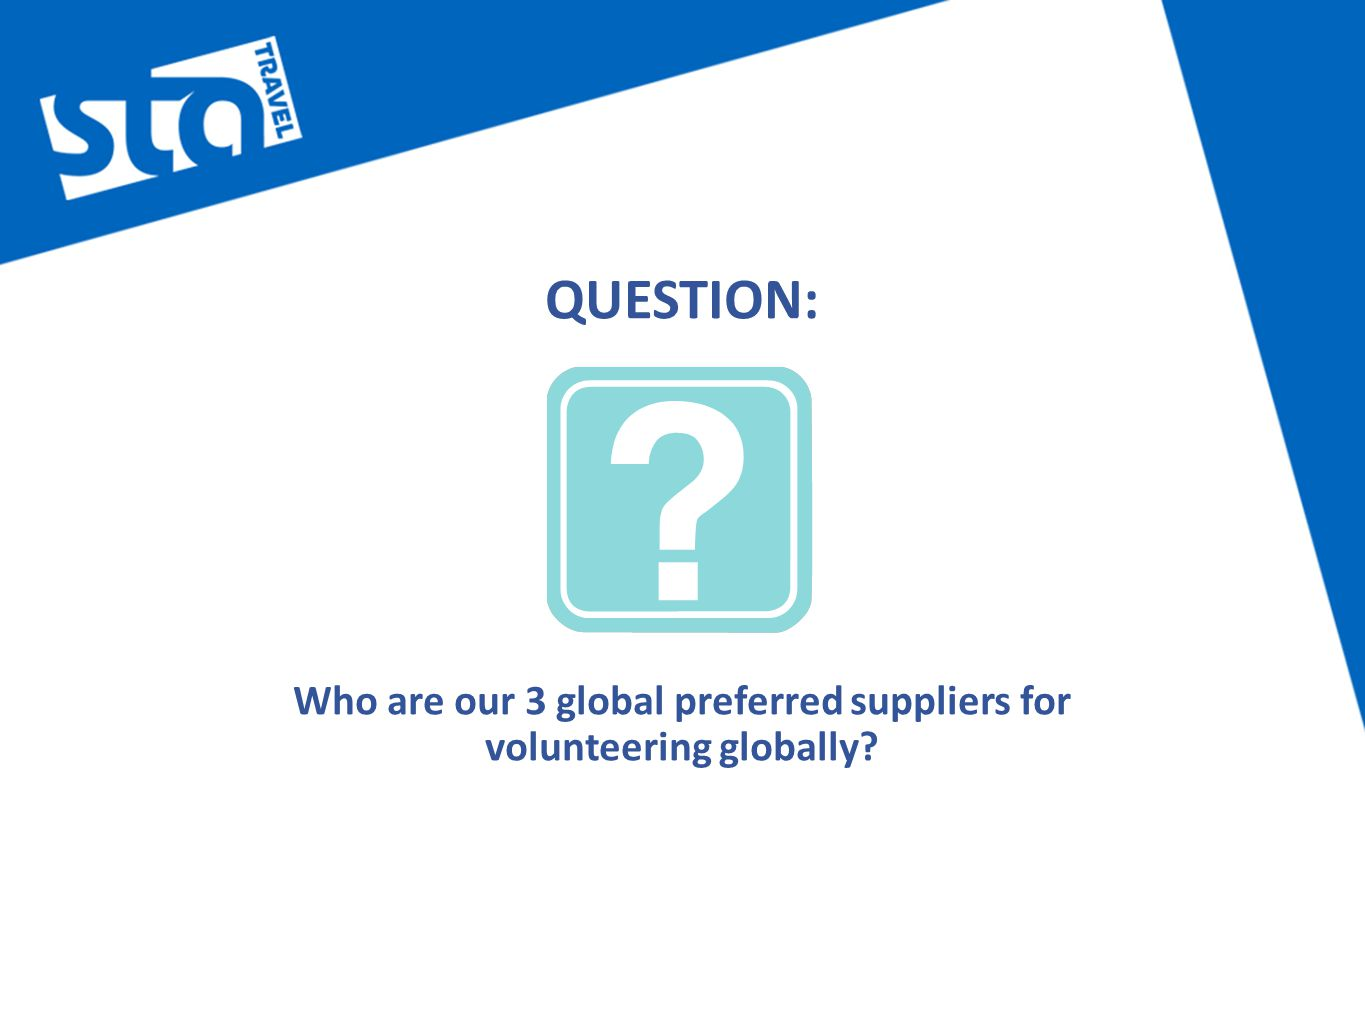 QUESTION: Who are our 3 global preferred suppliers for volunteering globally